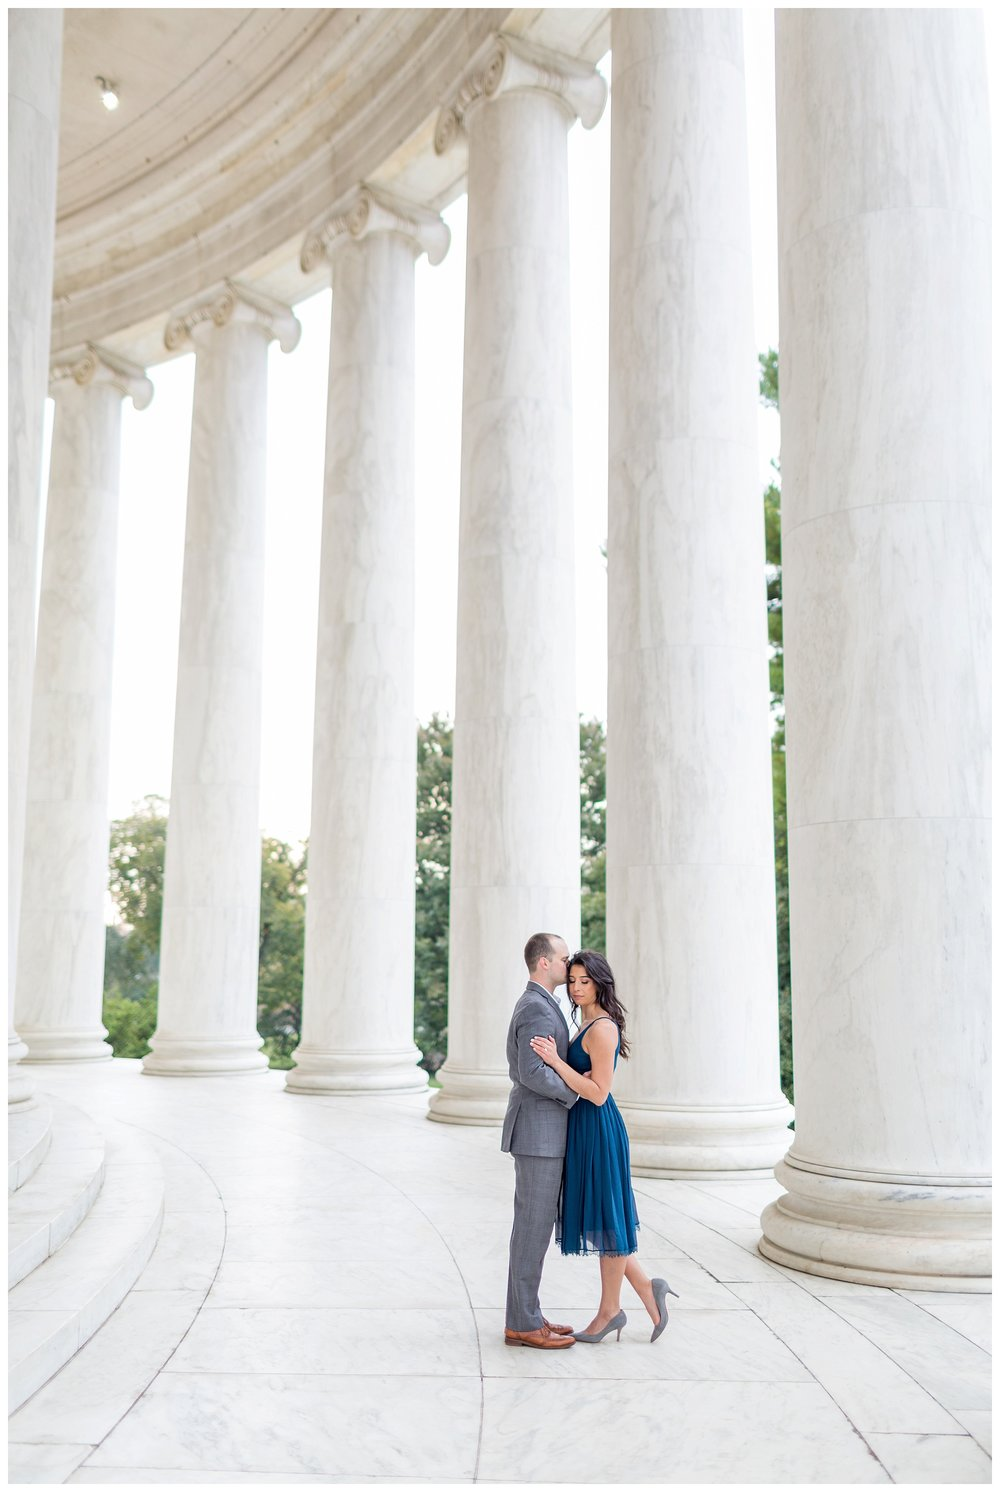 Washington DC Engagement Photos Kir Tuben_0021.jpg